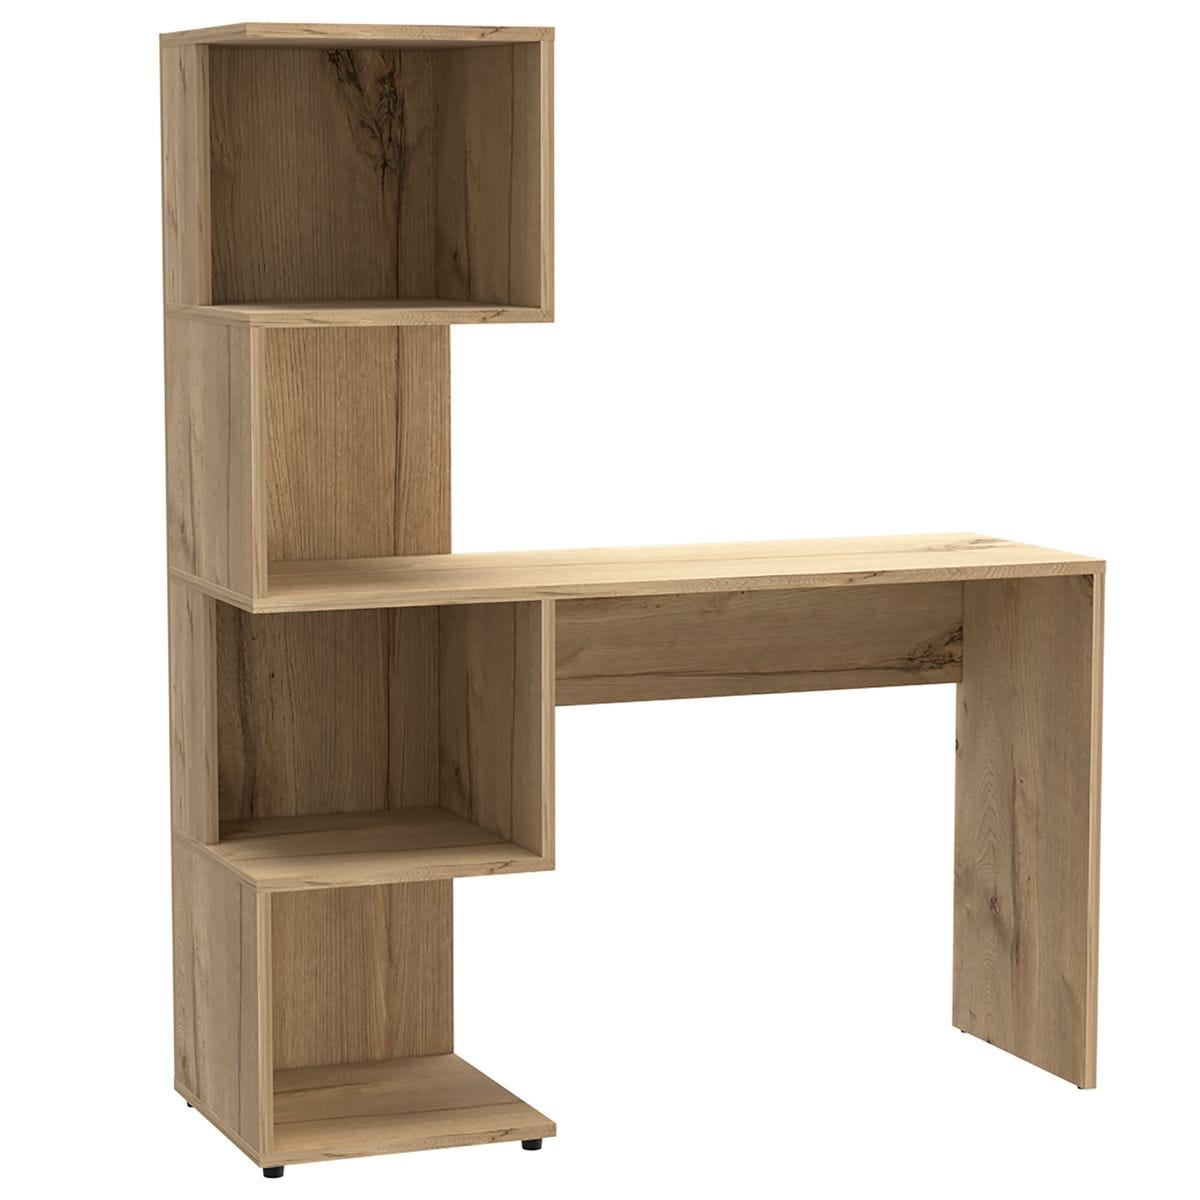 Brooklyn Home Office Desk with Tall Shelving Unit (Left Side)